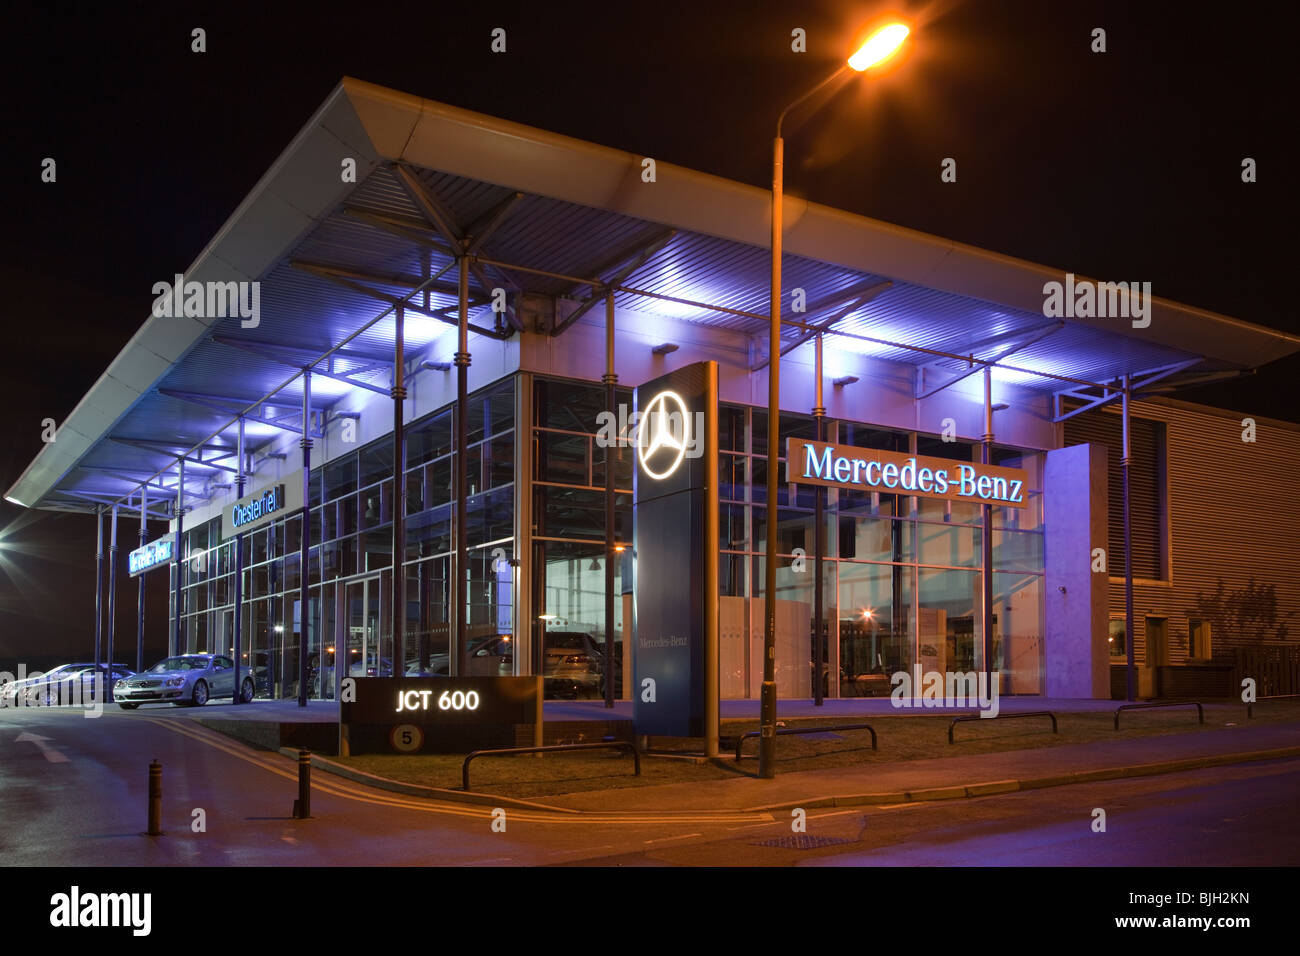 Mercedes benz dealership at night chesterfield derbyshire for Mercedes benz dealers in michigan